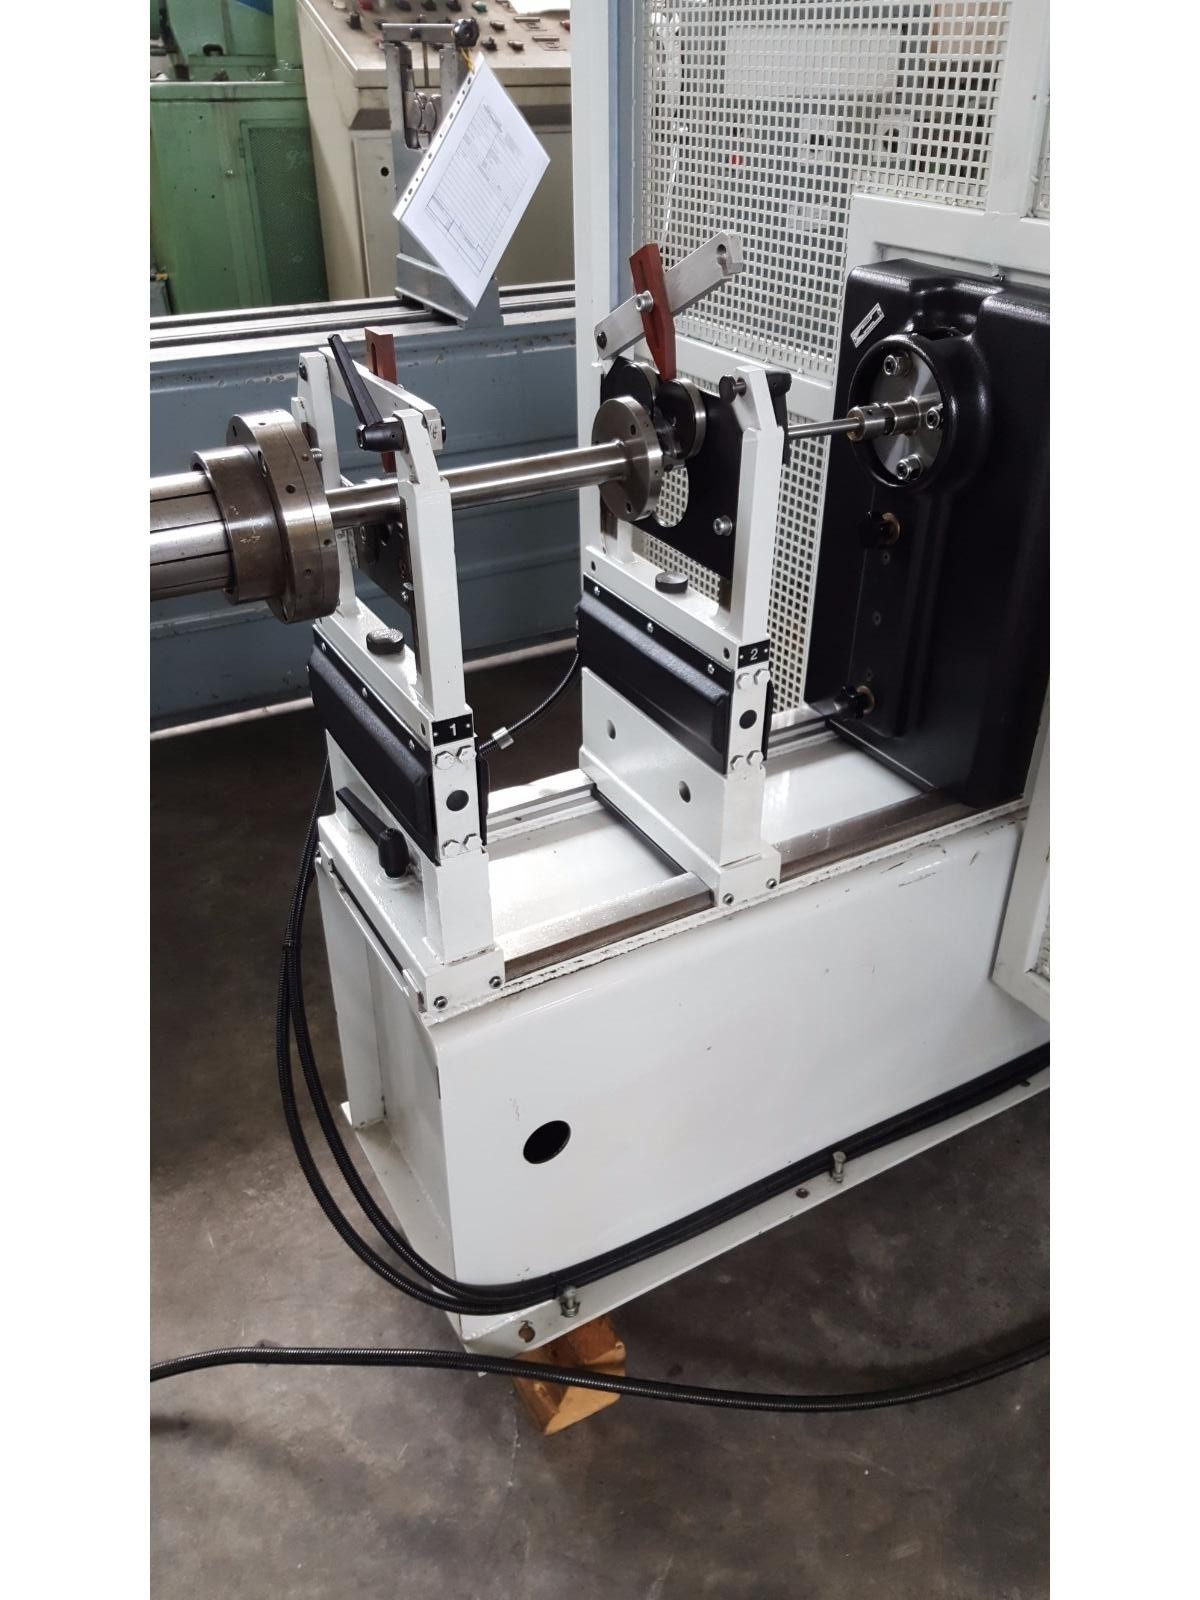 Equilibratrice a cnc CEMB